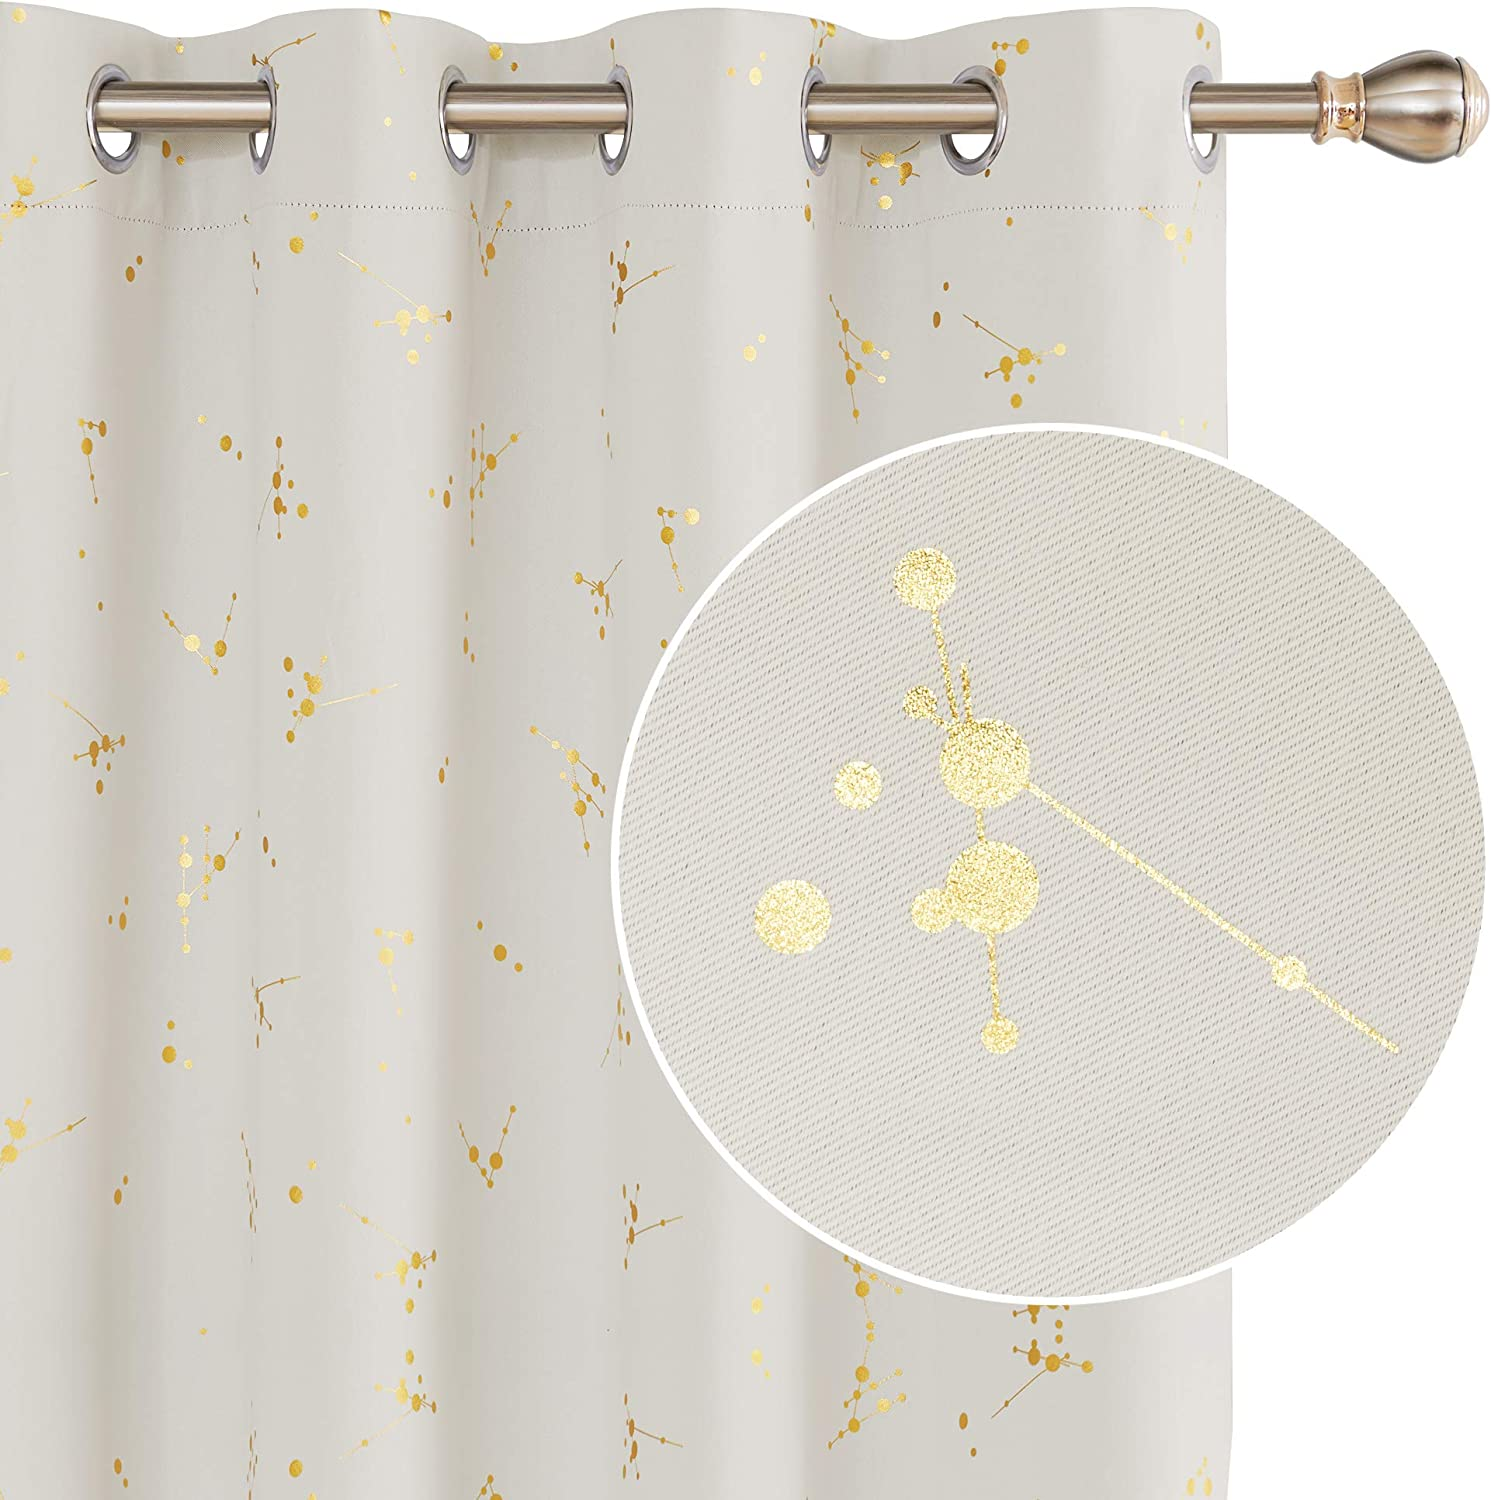 """Deconovo Ring Top Curtains Eyelet Blackout Curtains Gold Constellation Printed Thermal Insulated Curtains for Kids Bedroom Beige W66 x L54 One Pair 2xW66""""xL54"""" Beige"""